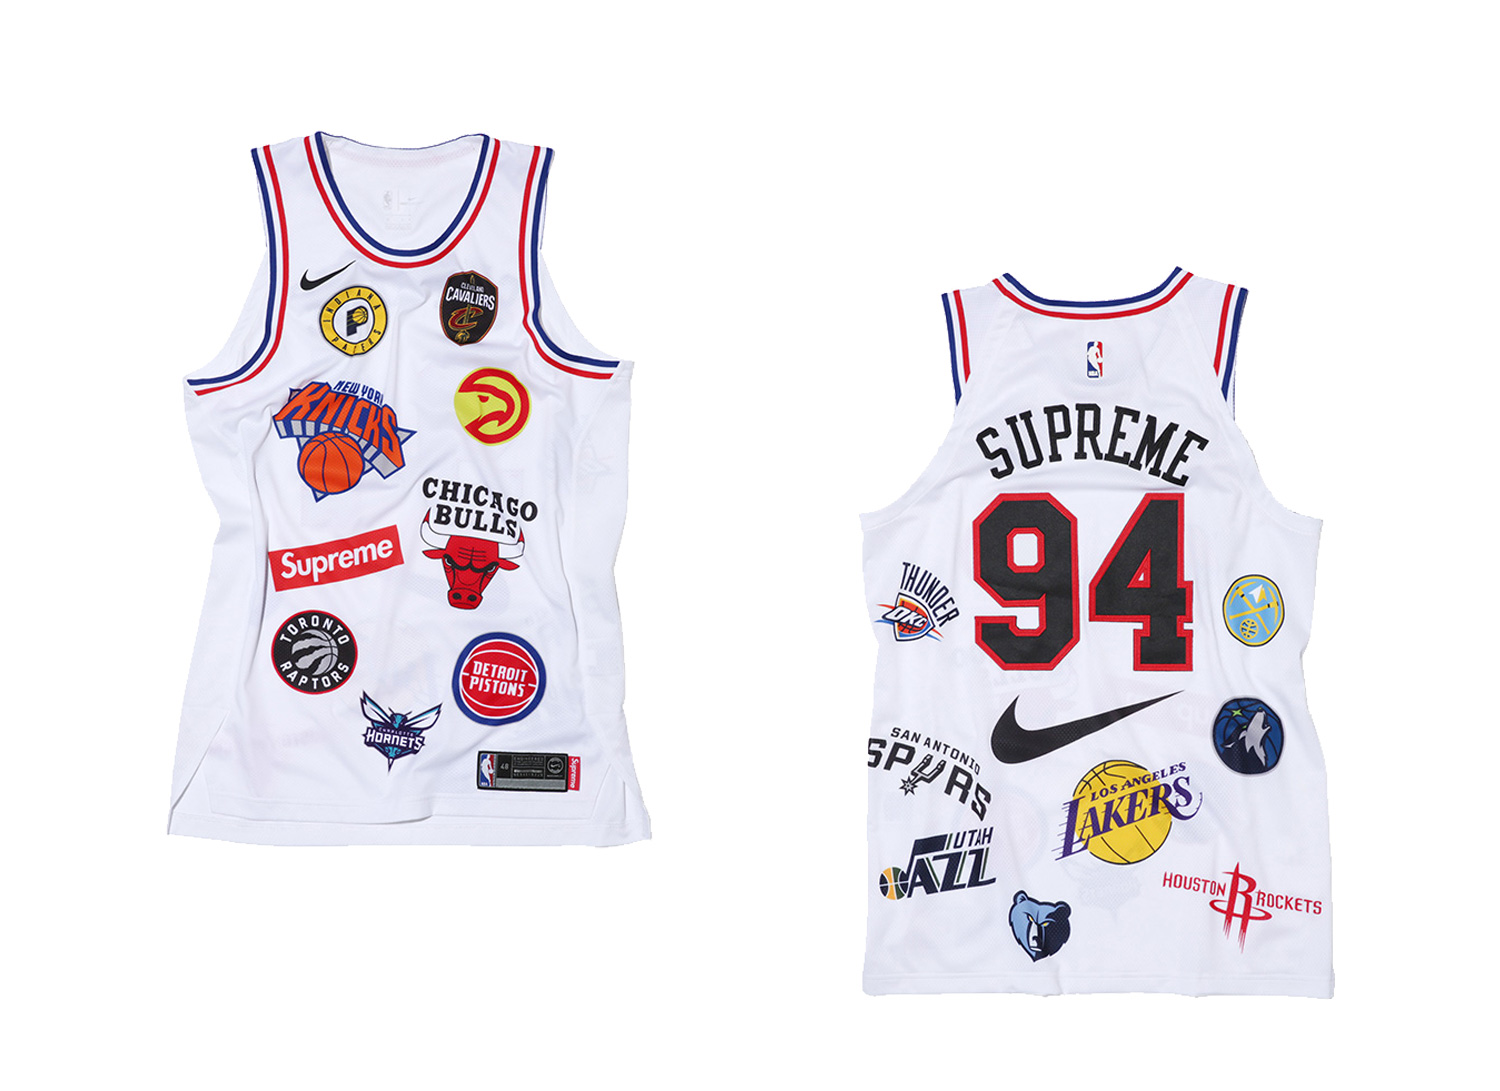 Supreme®/Nike®/NBA Jersey (White)